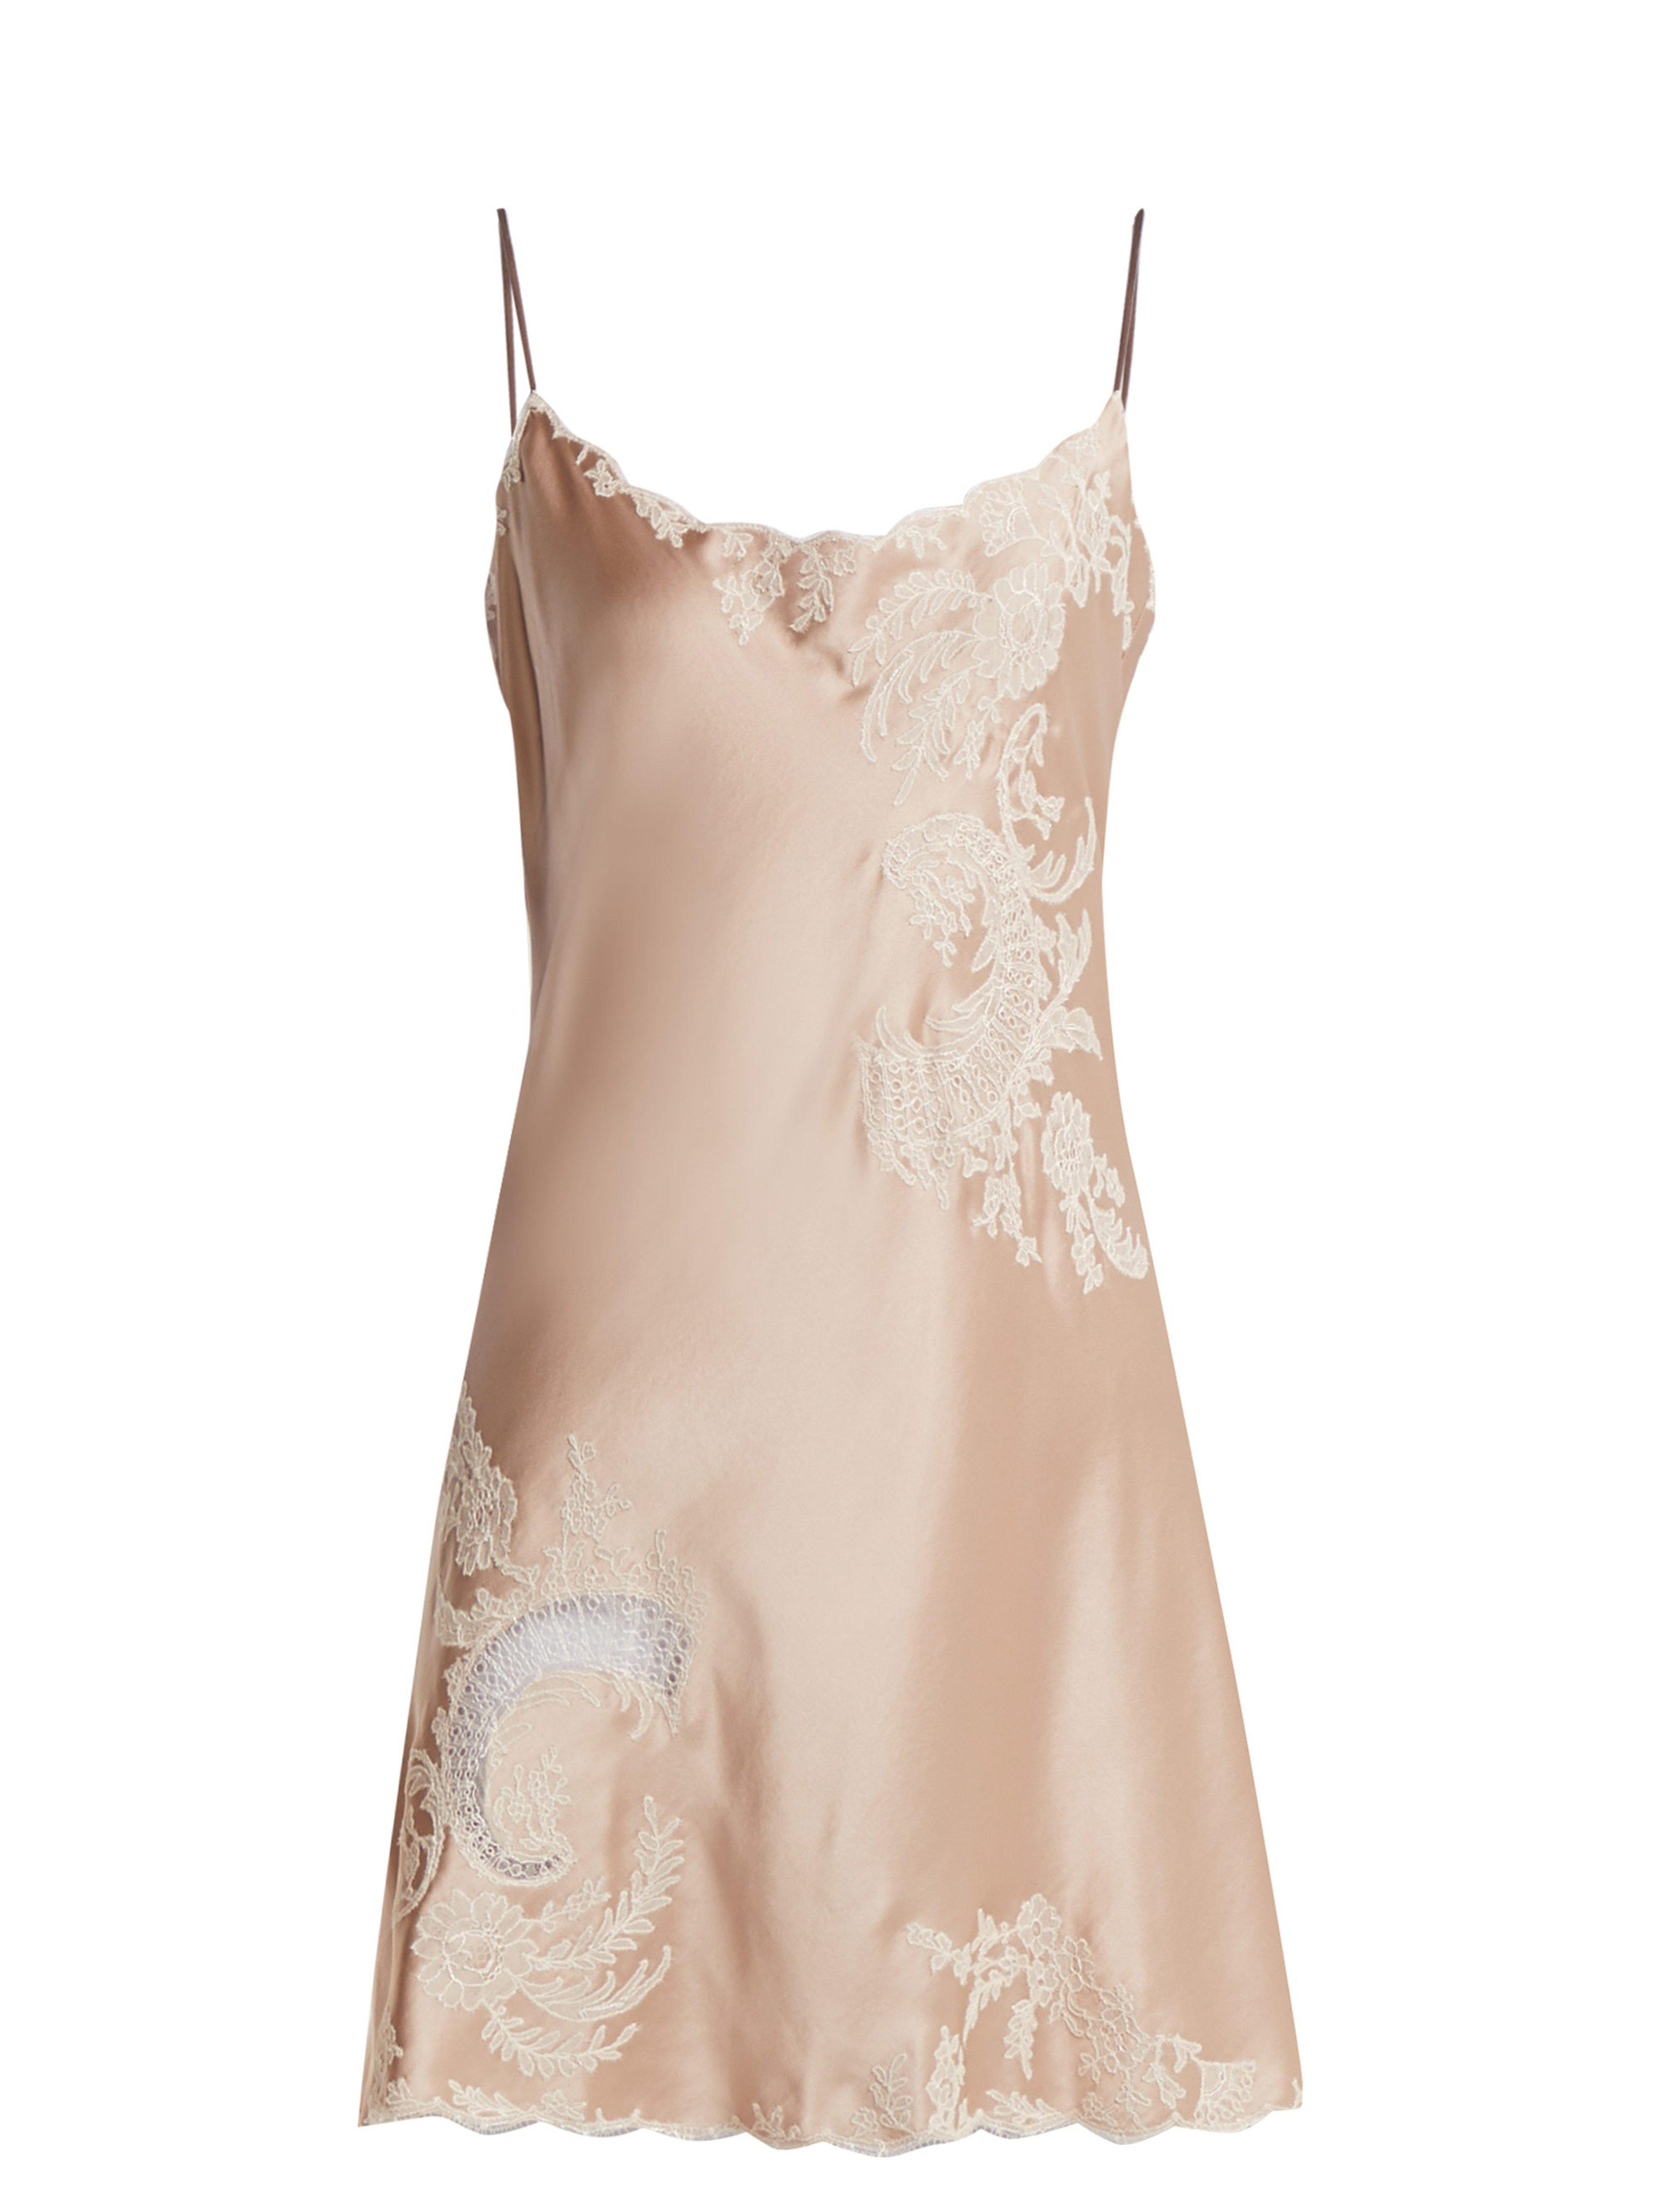 2ad1f342a9e5 Carine Gilson Lace Trimmed Silk Satin Slip Dress in Pink - Lyst